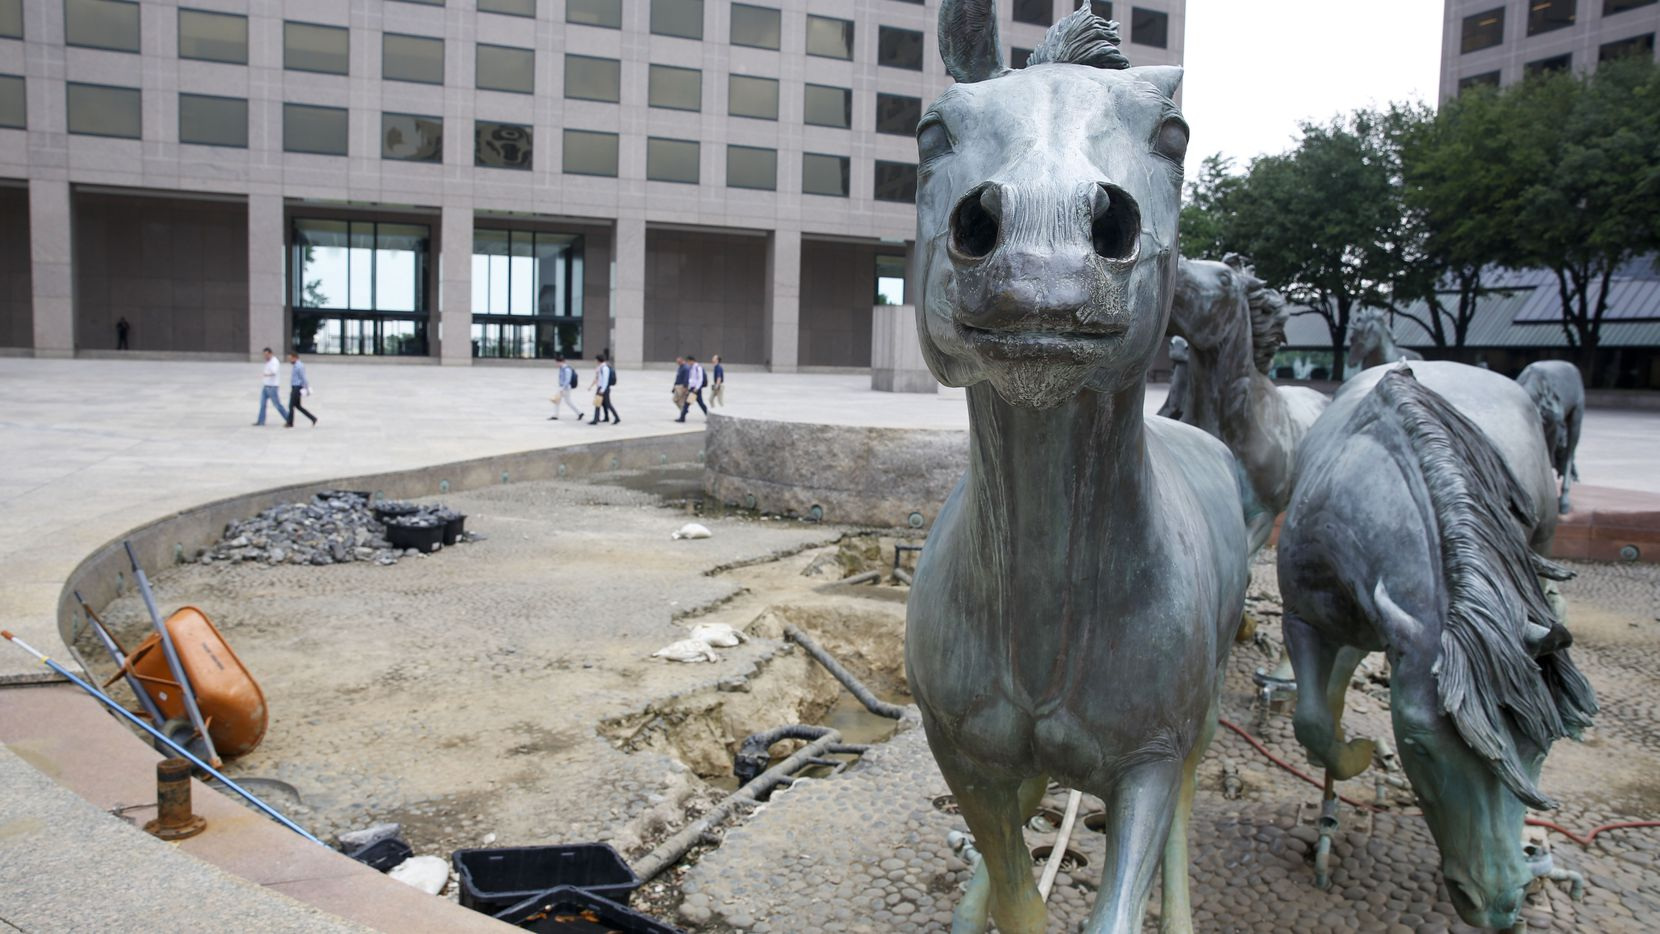 The Towers at Williams Square in Las Colinas is best known for its mustang sculpture, fountain and plaza that's a hit with tourists. The fountain and plaza surrounding the mustangs are getting a redo.